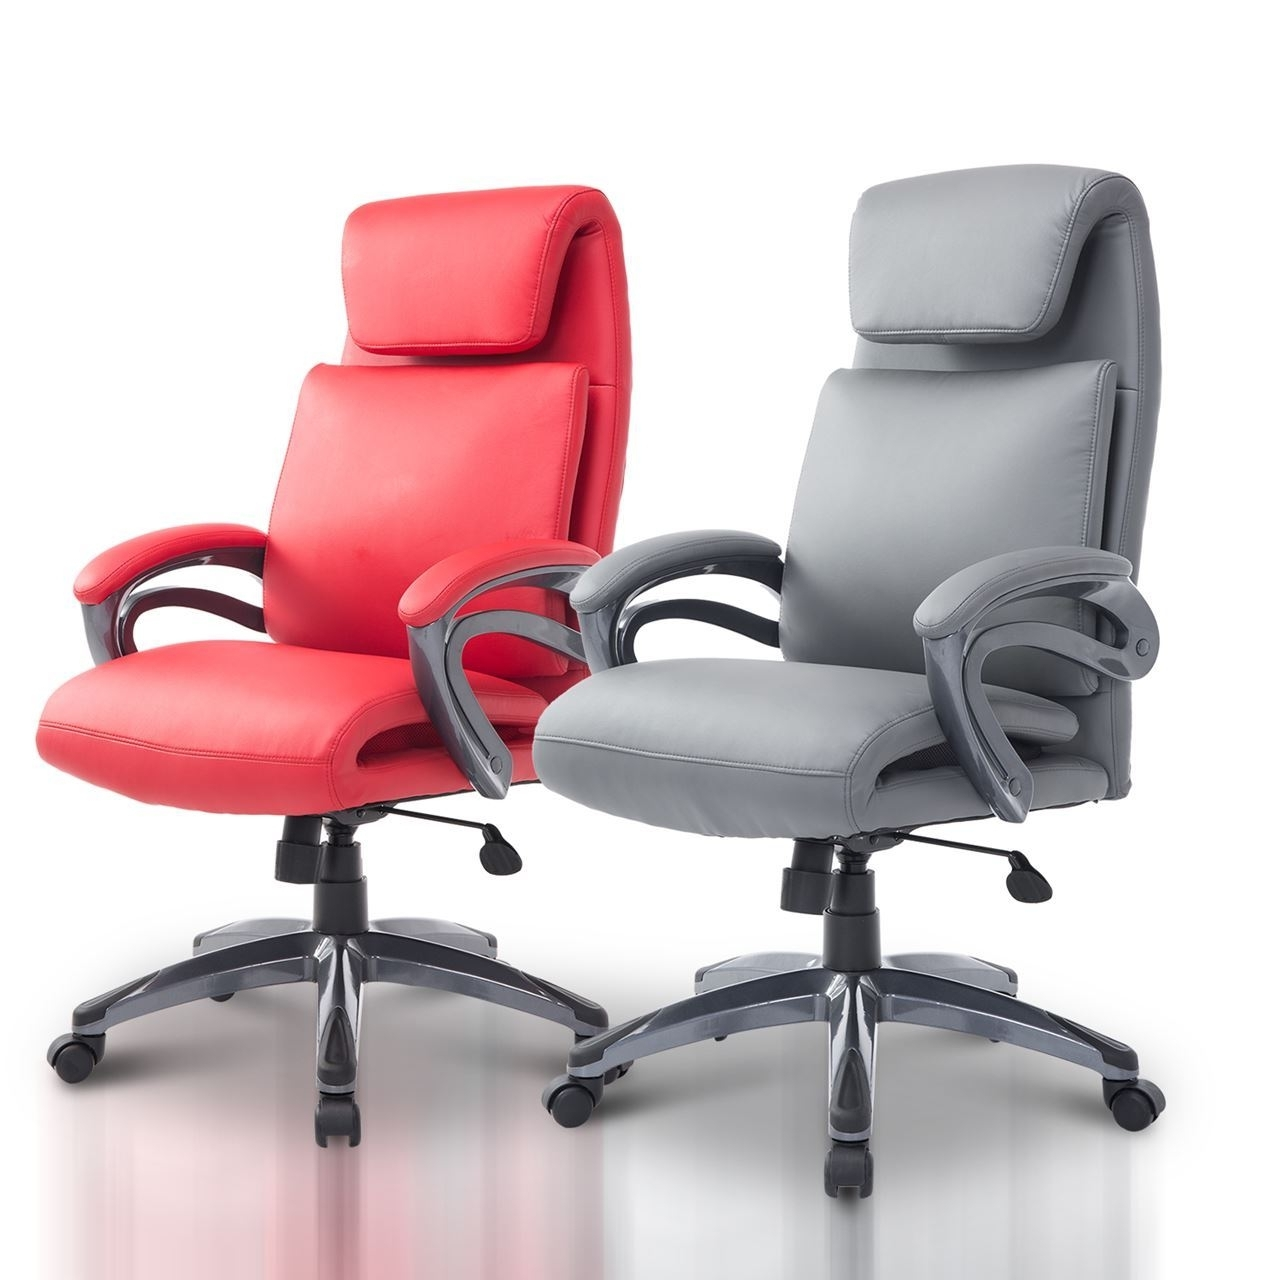 Ergonomic Executive Office Chair Pu Leather (Gallery 1 of 20)